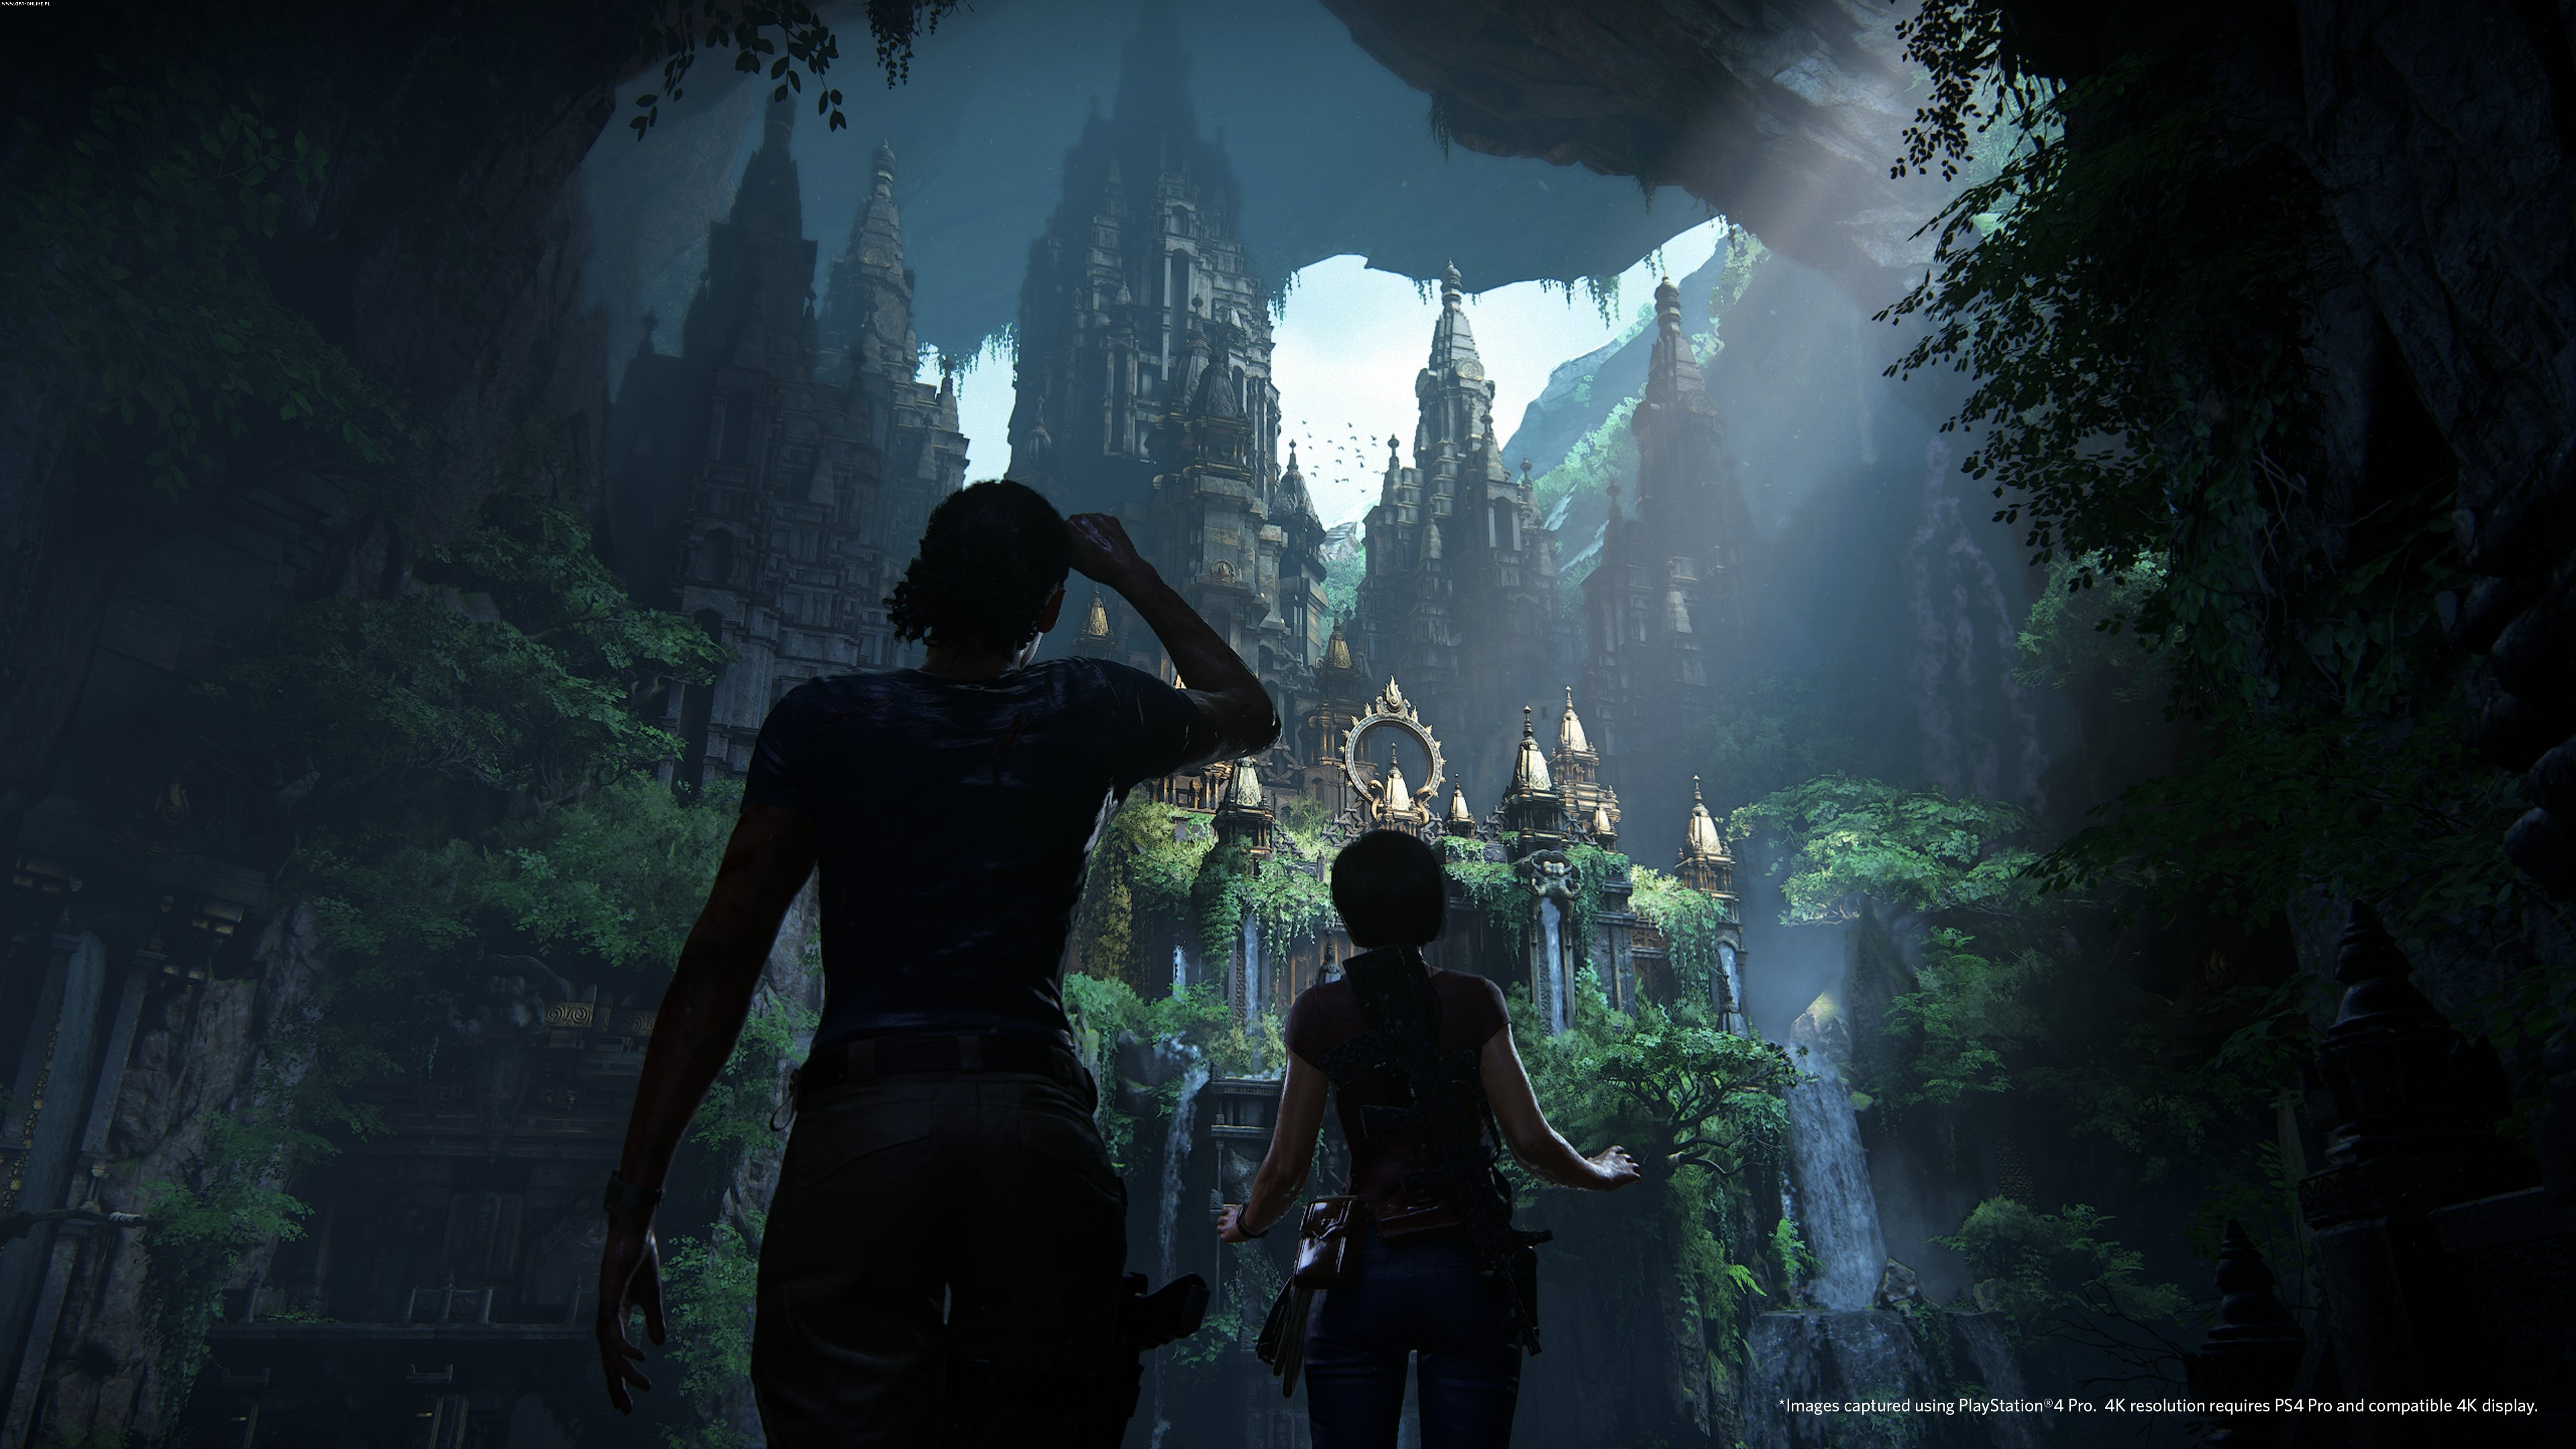 Uncharted: The Lost Legacy PS4 Games Image 127/141, Naughty Dog, Sony Interactive Entertainment